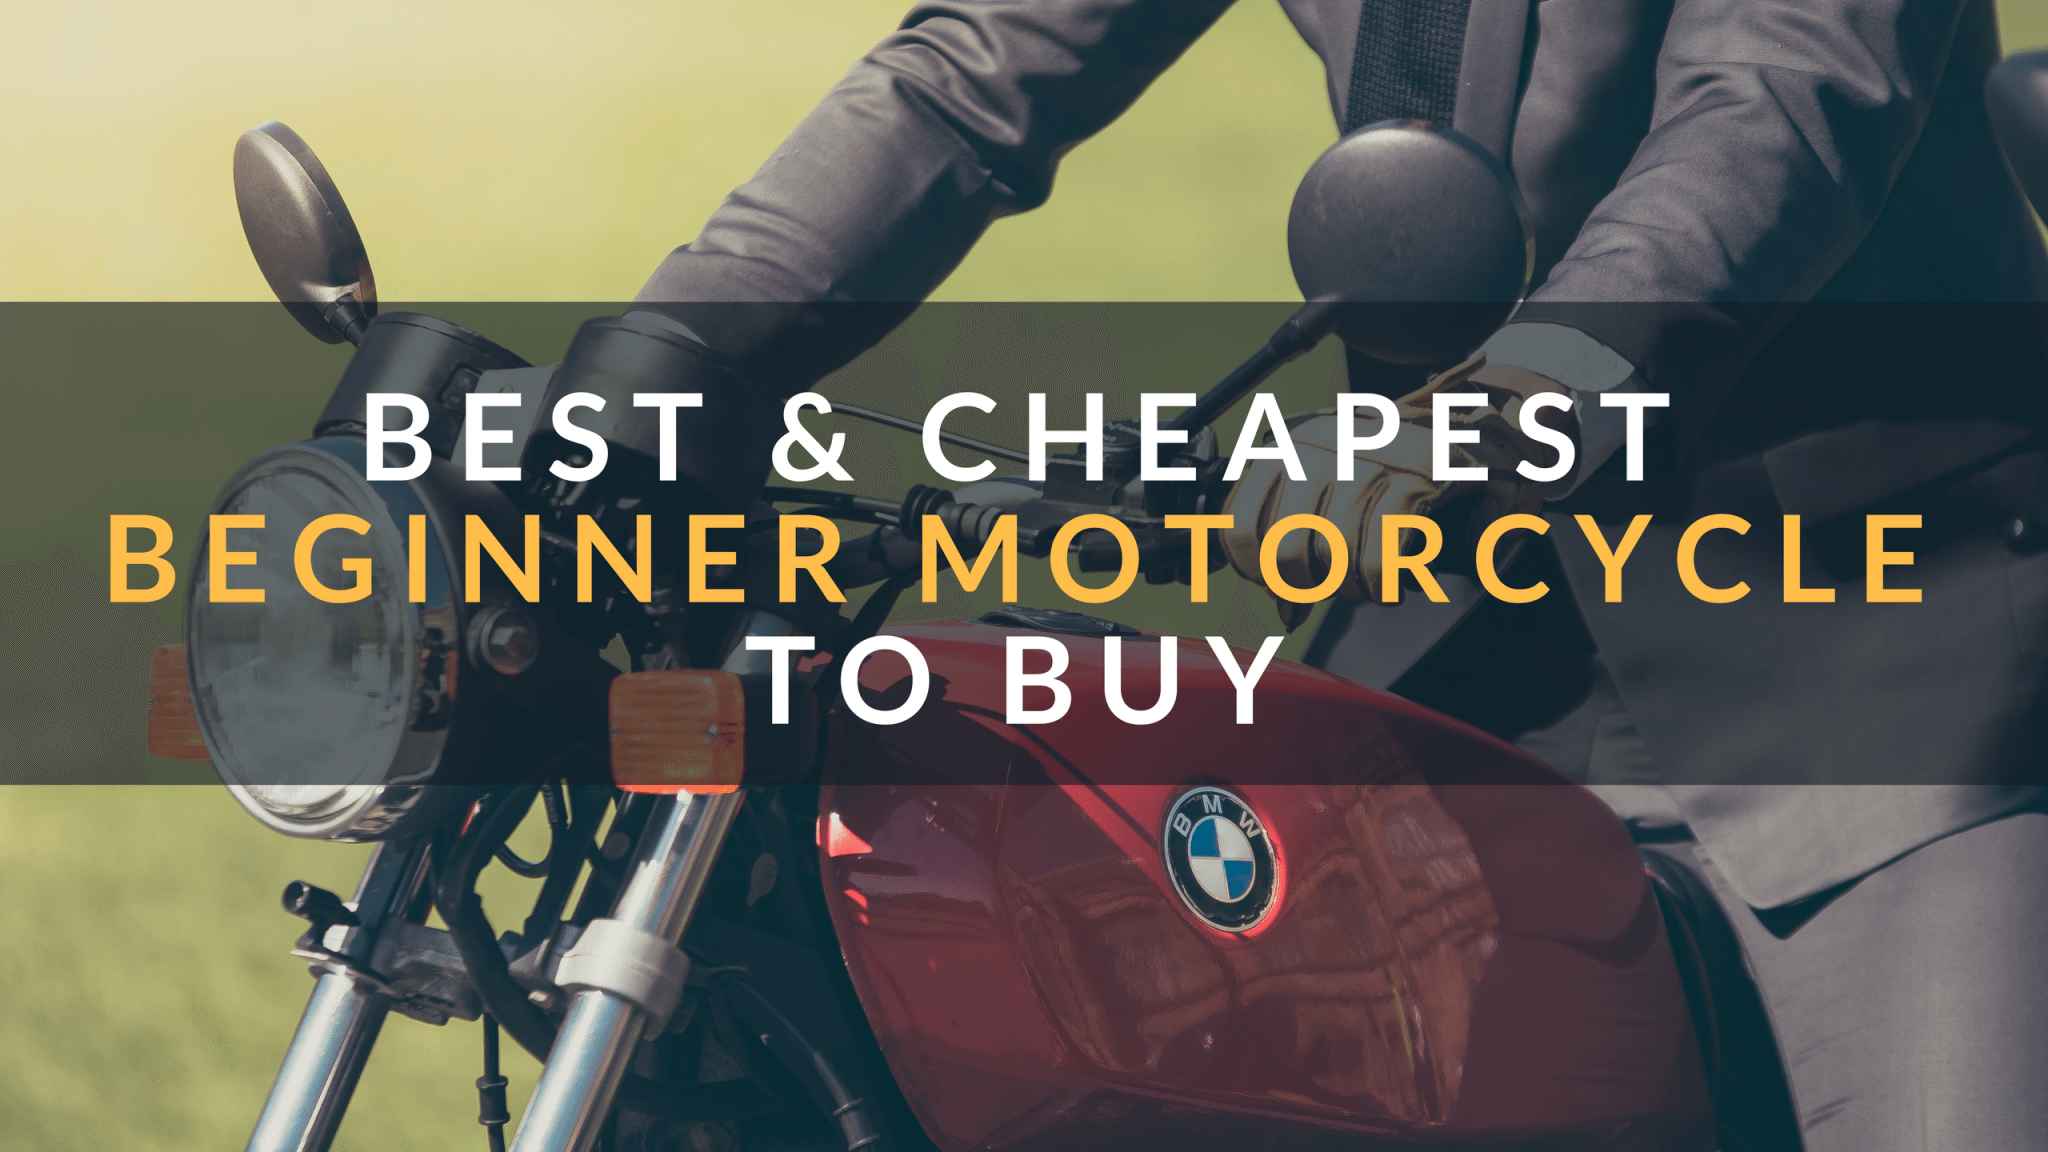 Best and cheapest beginner motorcycle to buy